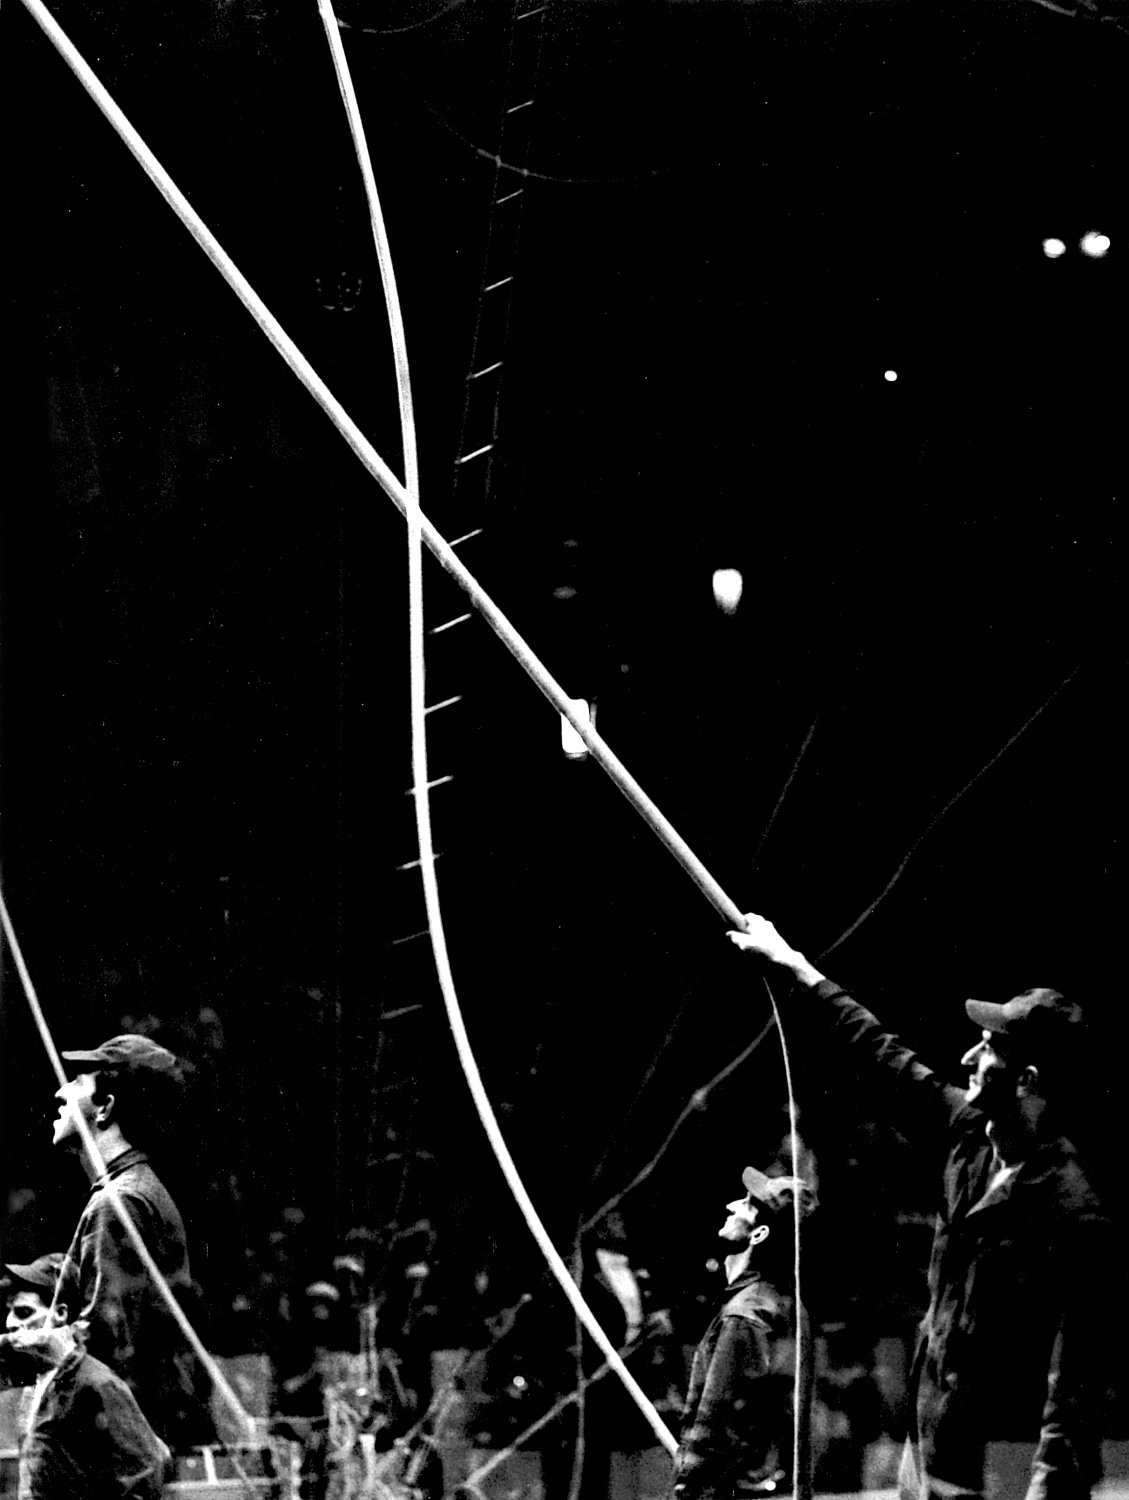 - The riggers working in the background, making sure that all the ropes and wires are in the proper places. - Leo Stashin. Circus, Ringling Bros. Barnum and Bailey, Madison Square Garden, tightrope, trapeze. Alzana, black and white - Tony Karp, design, art, photography, techno-impressionist, techno-impressionism, aerial photography , drone , drones , dji , mavic pro , video , 3D printing - Books -